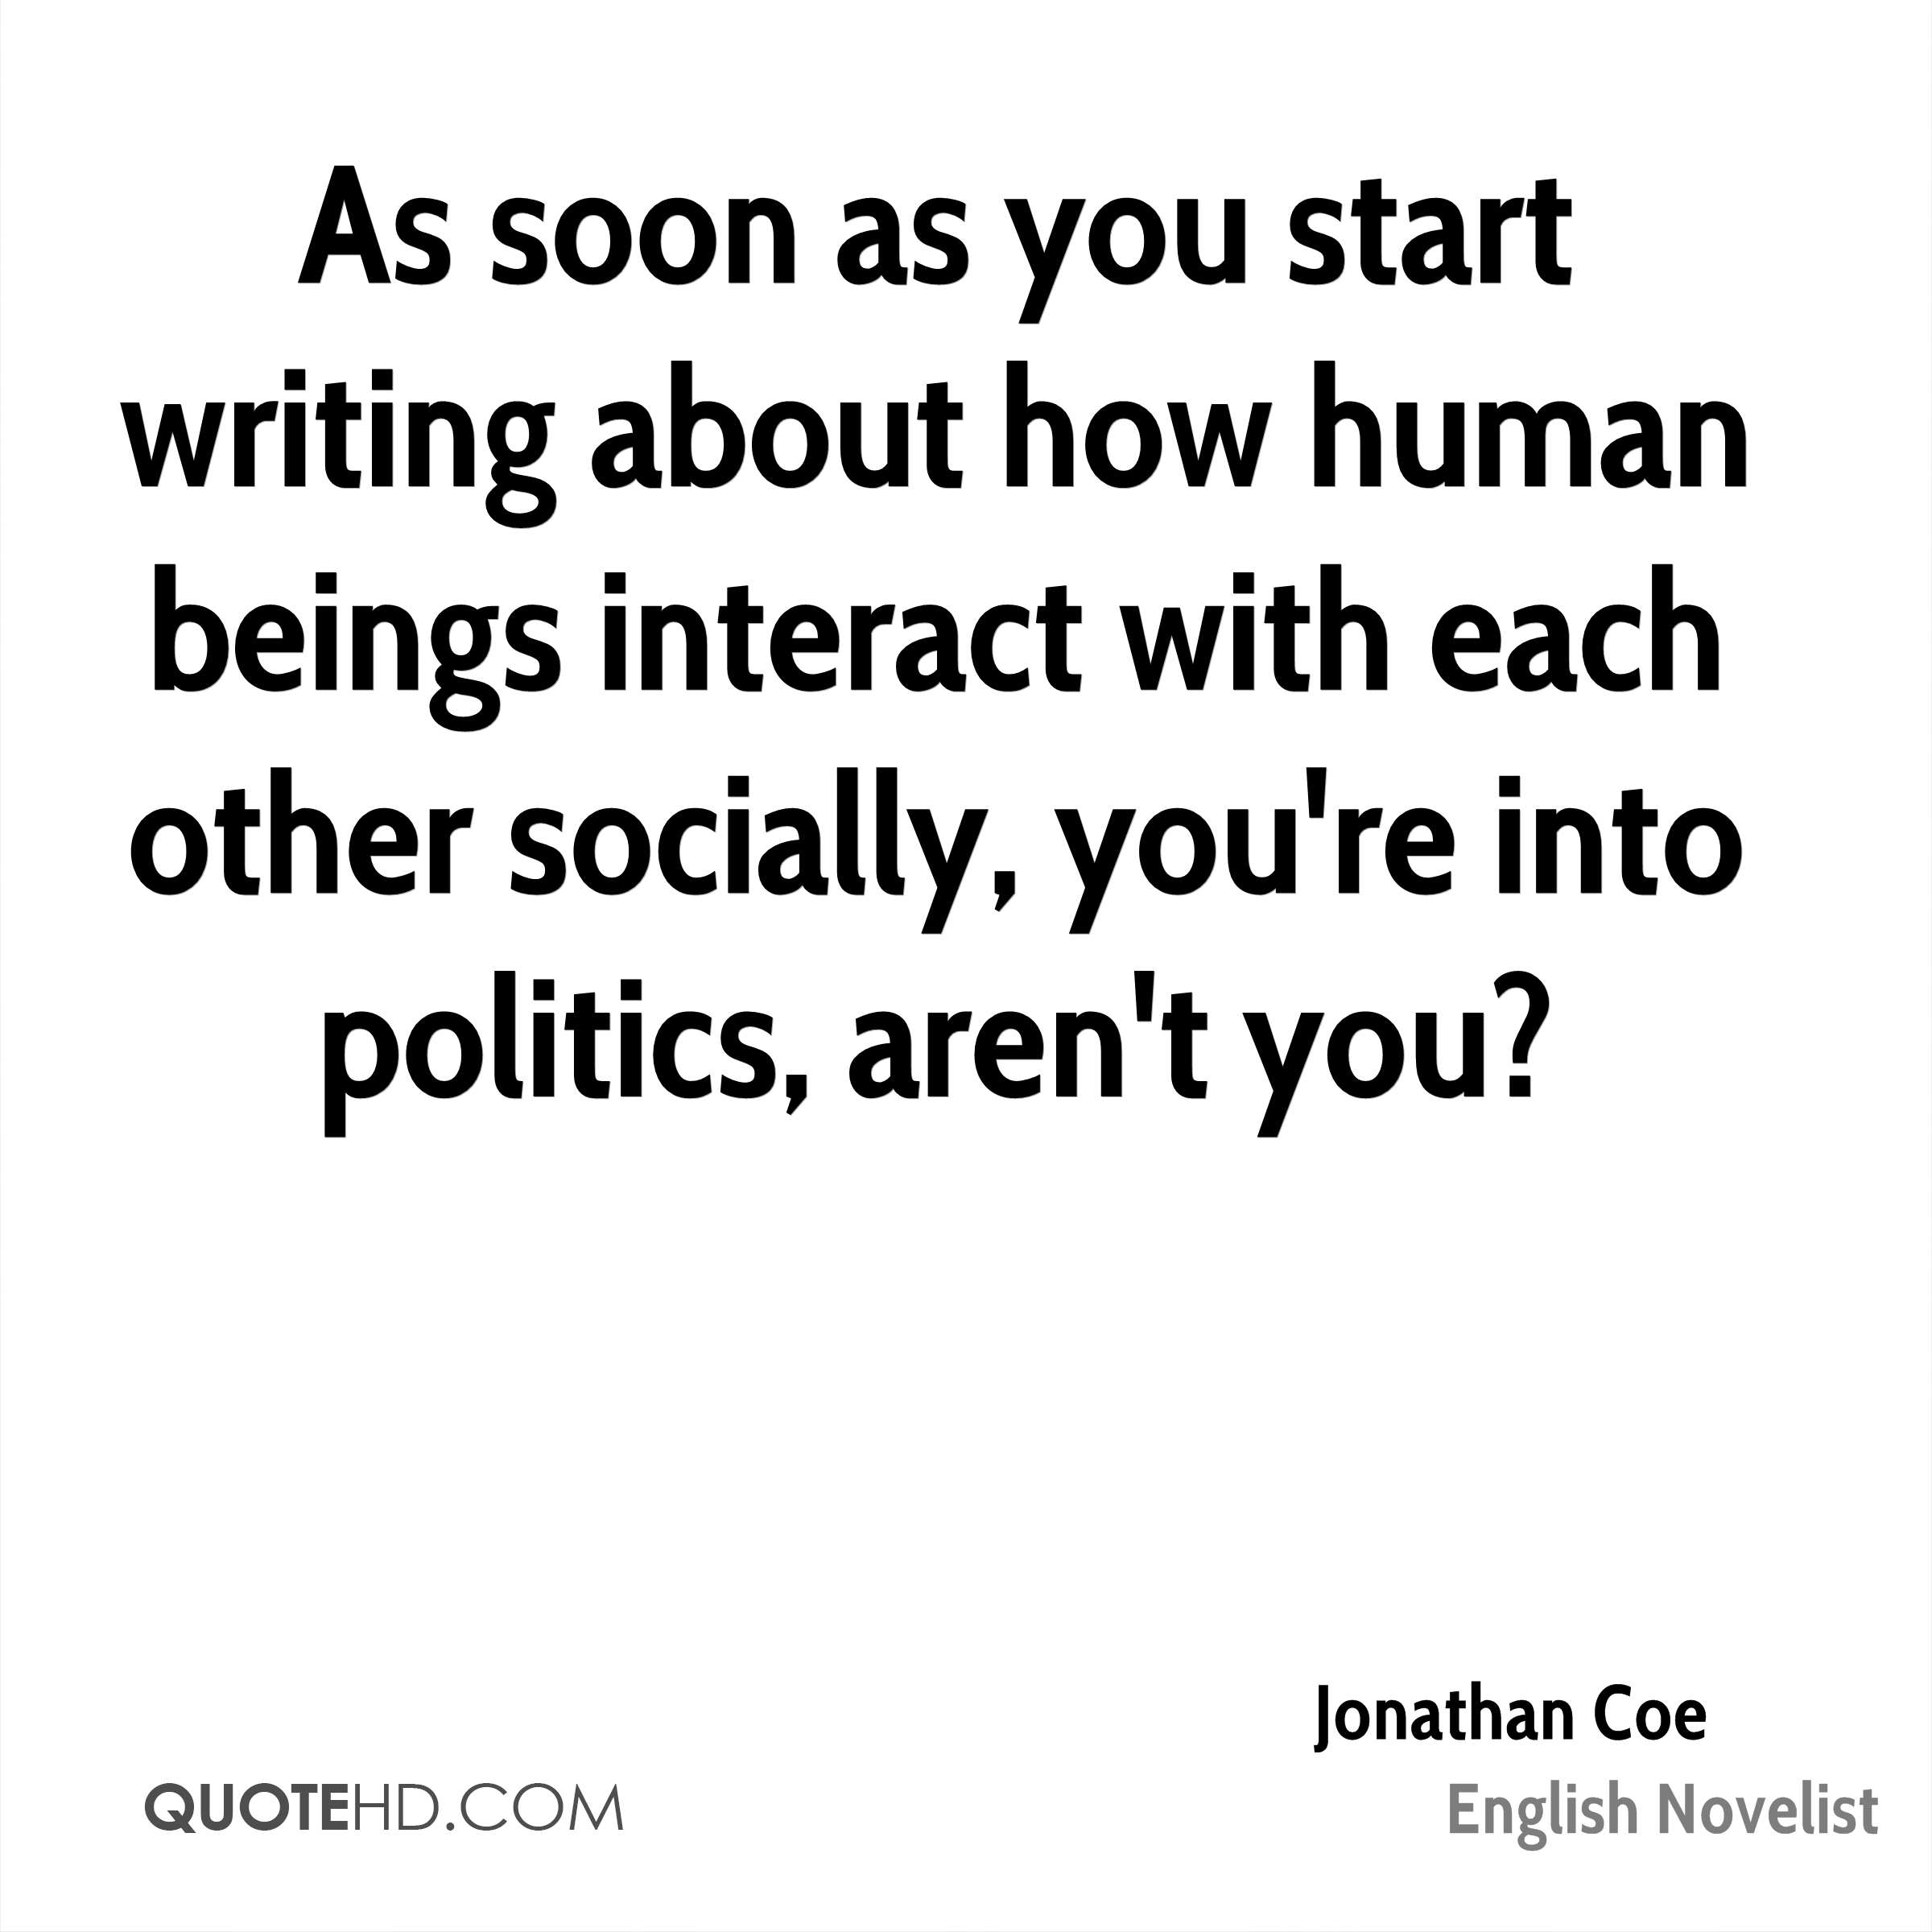 As soon as you start writing about how human beings interact with each other socially, you're into politics, aren't you?